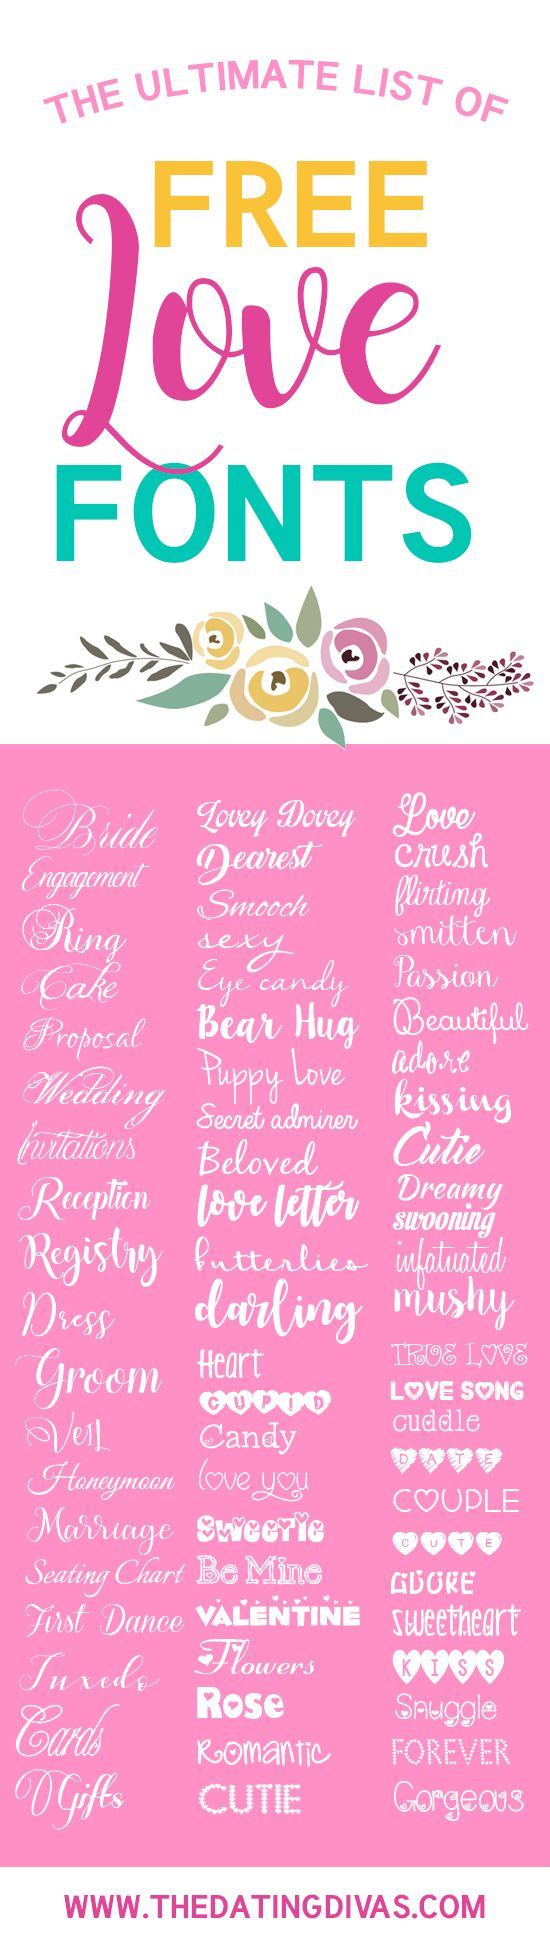 A list of the BEST love fonts on the internet! Completely free fonts for Valentine's day, a wedding, or for the romantic at heart!